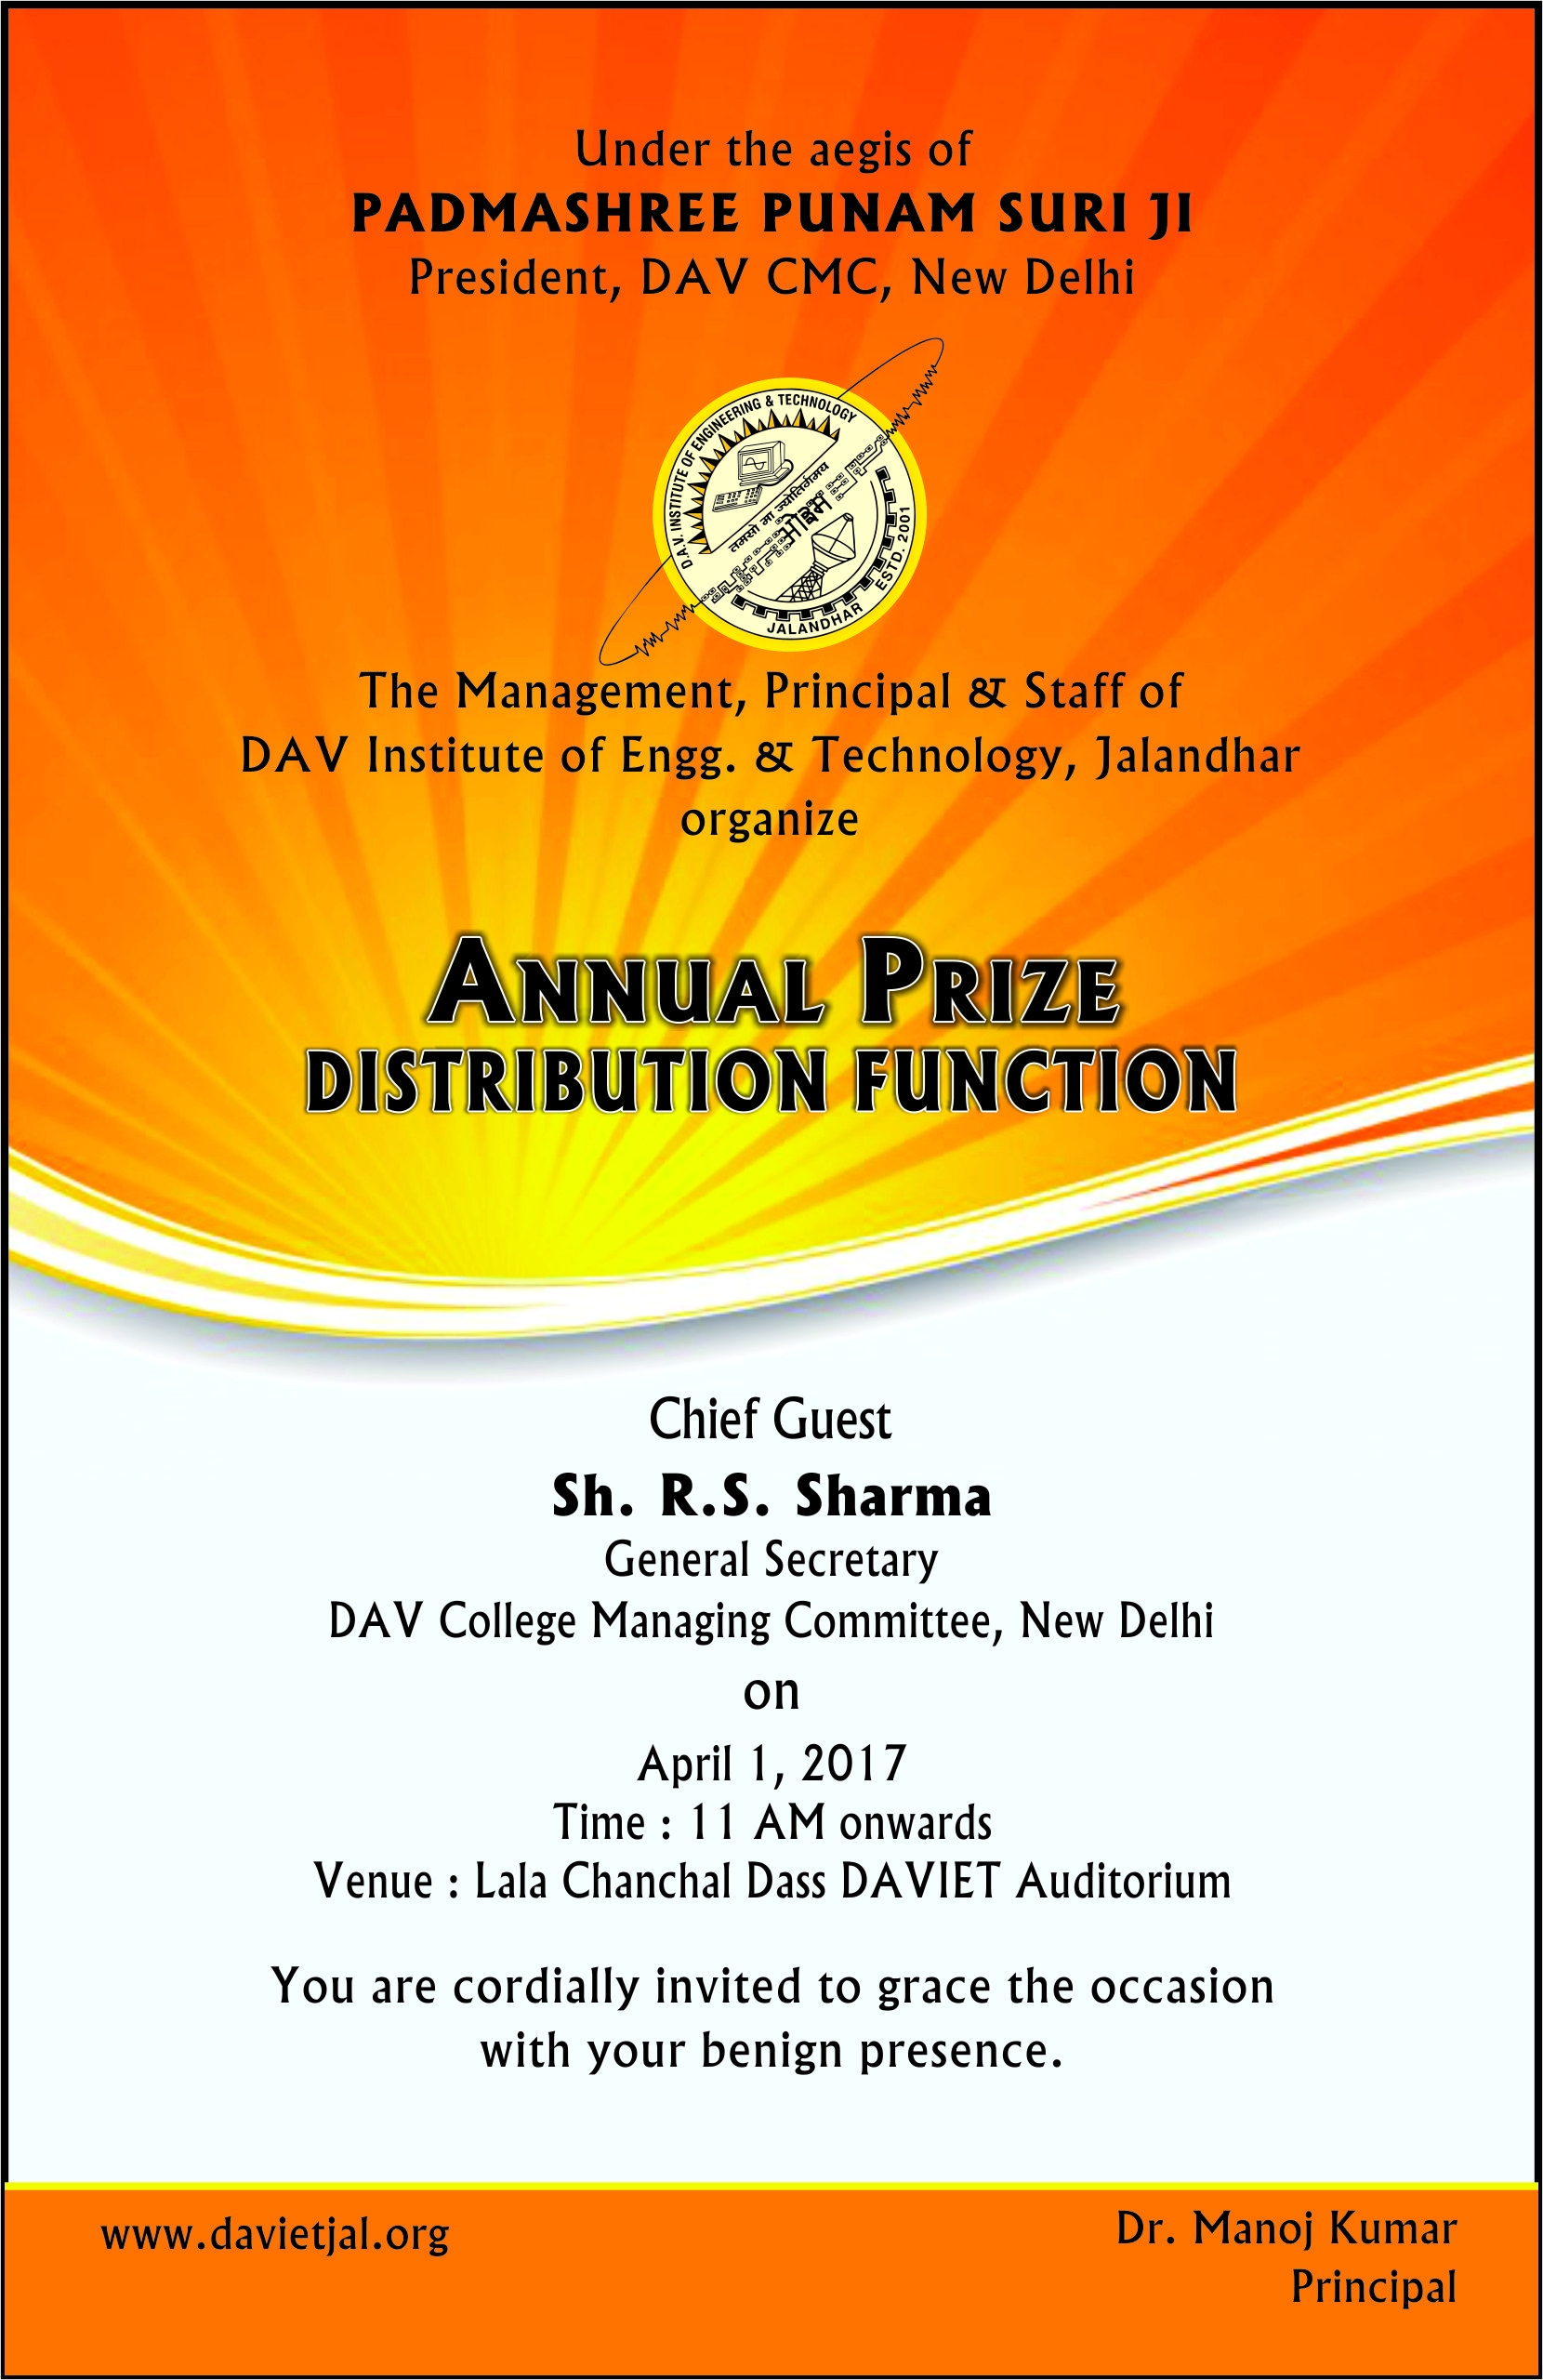 275 Words Essay on the Annual Prize Distribution Function